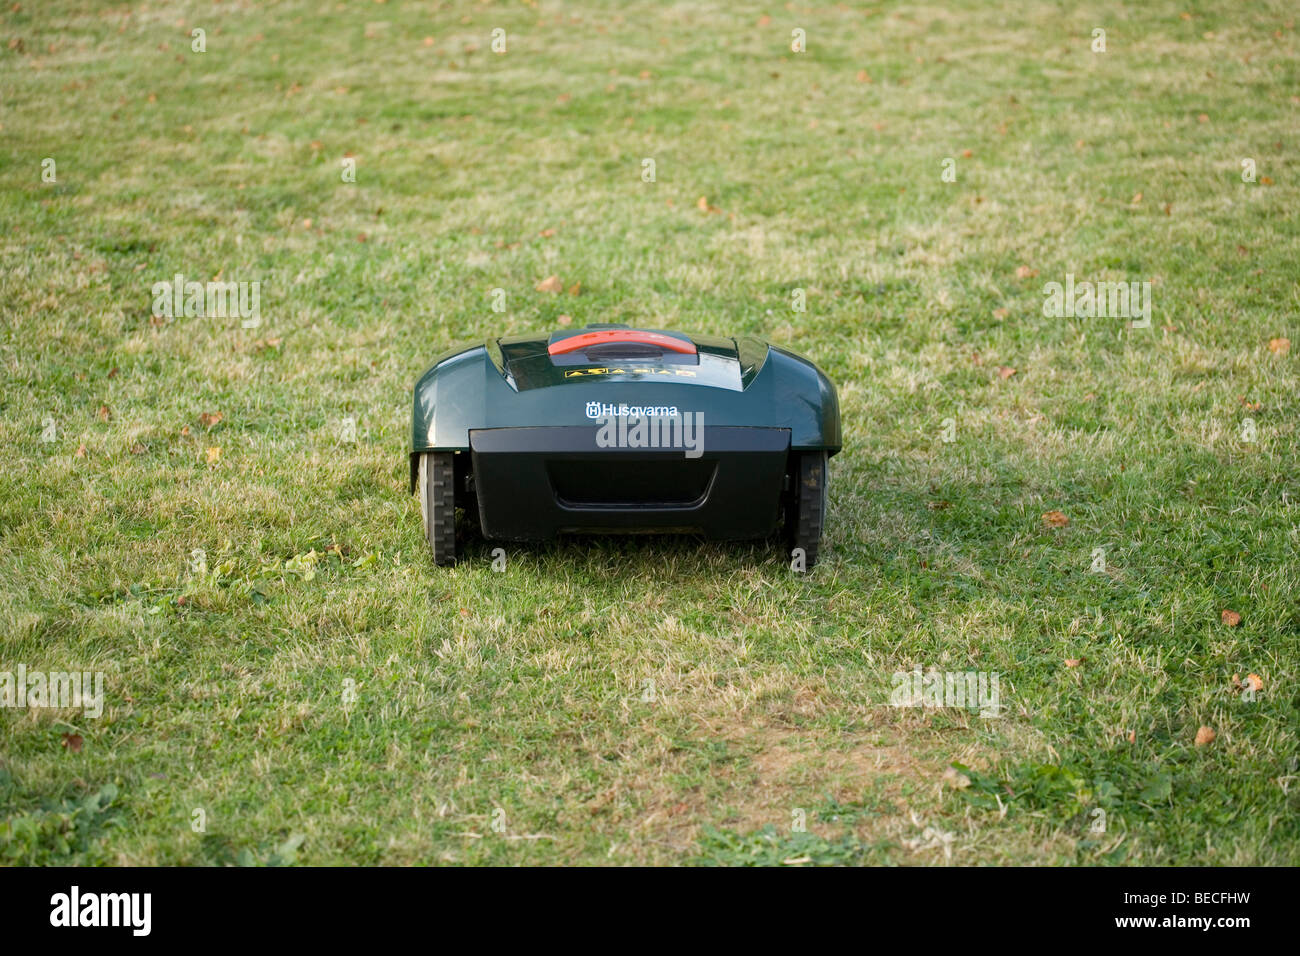 Automatic robot lawn mower cutting grass rear view - Stock Image